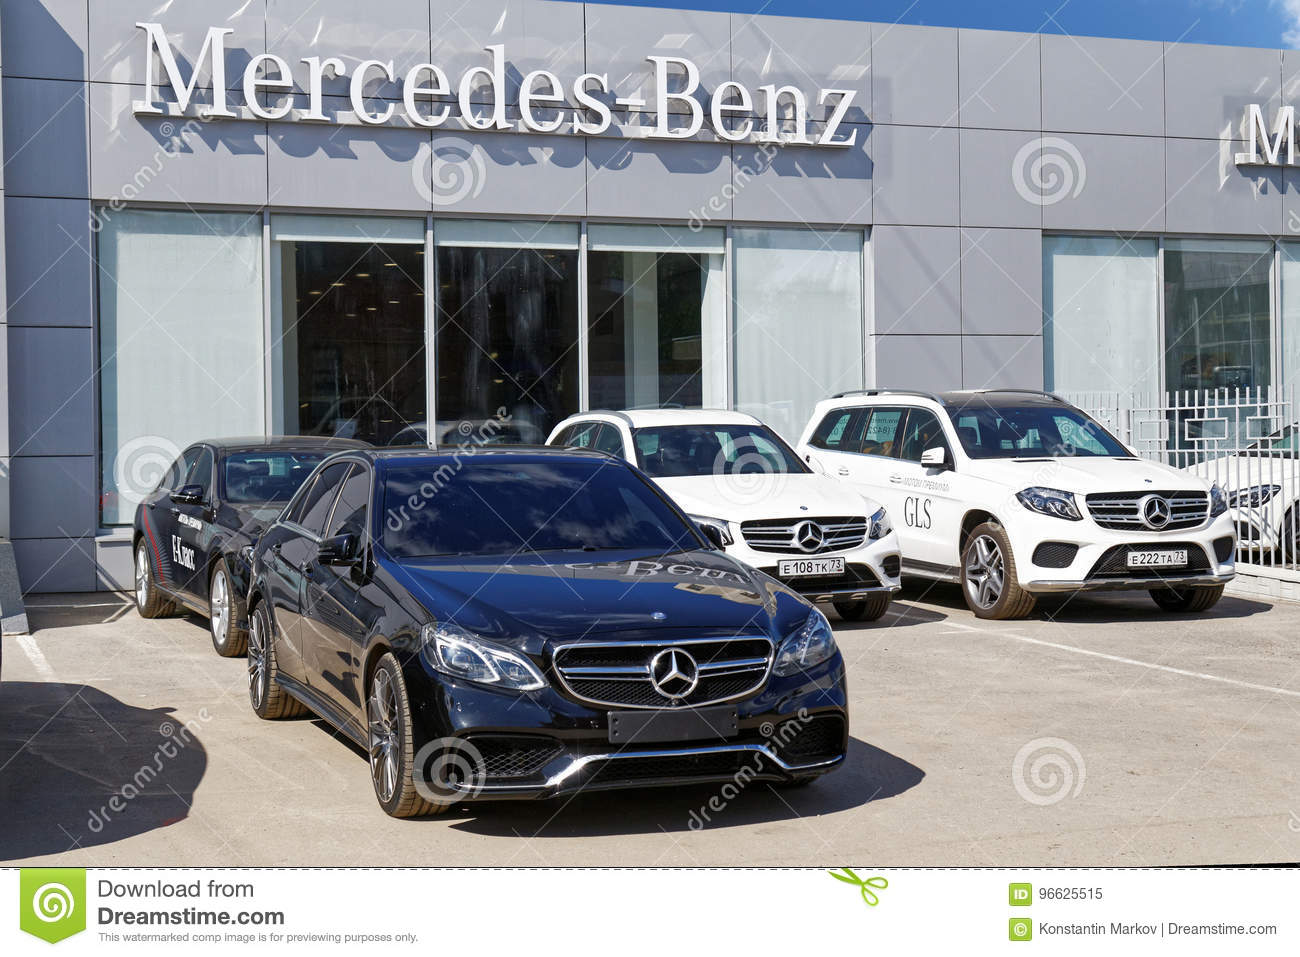 Ulyanovsk, Russia   July 22, 2017: Building Of Mercedes Benz Car Selling  And Service Center With Mercedes Sign And The Cars In Front Of It.